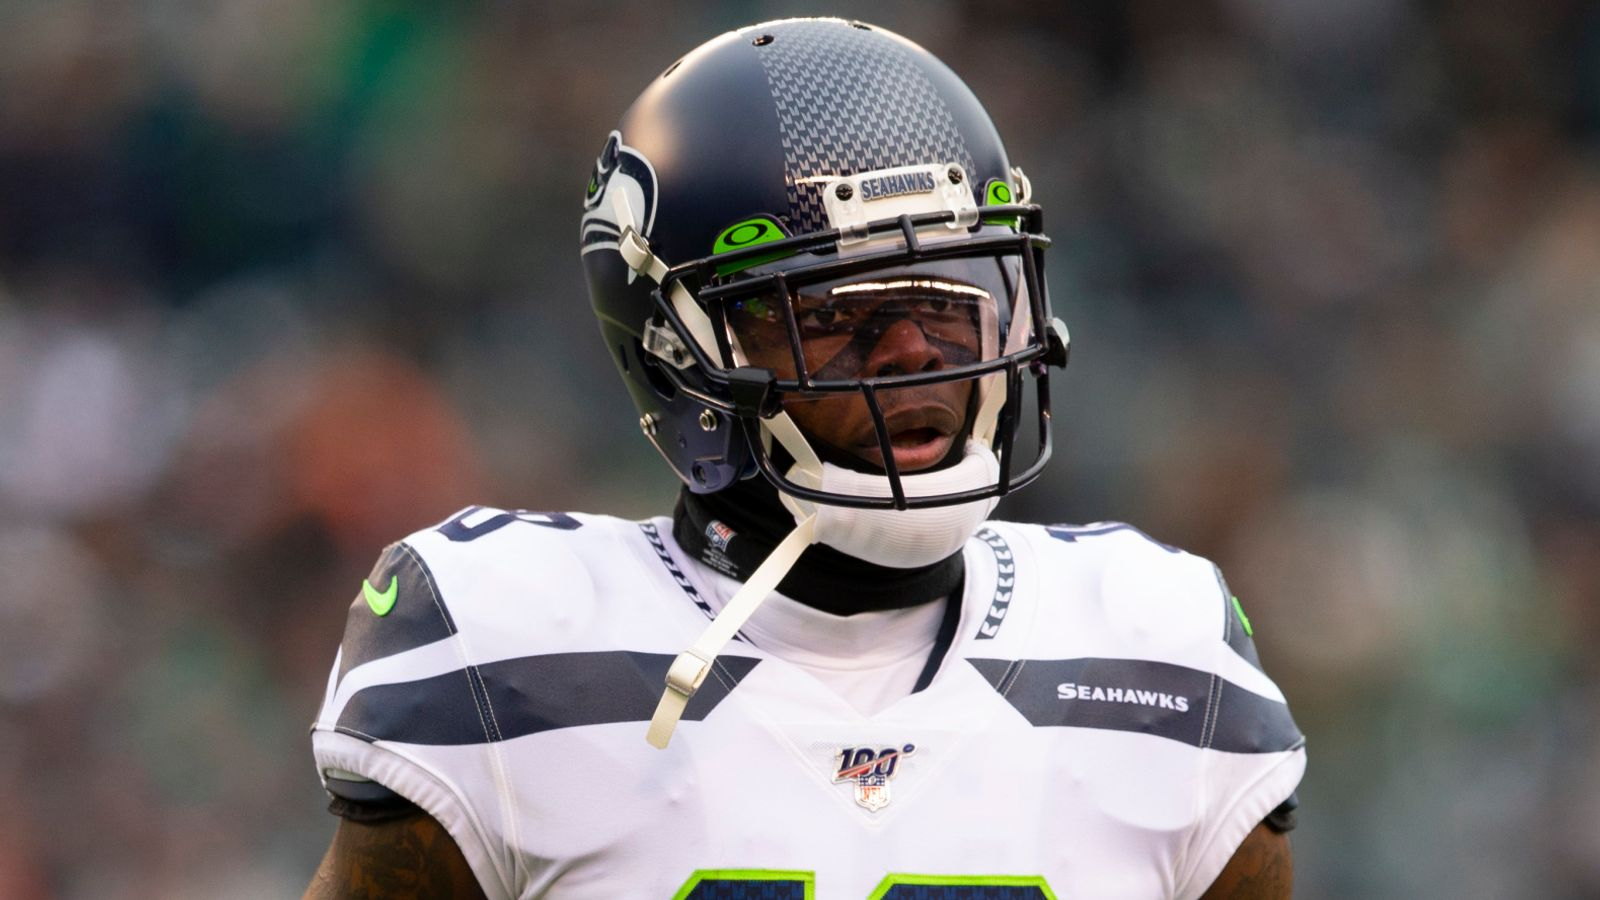 Josh Gordon: Seattle Seahawks wide receiver conditionally reinstated by the NFL